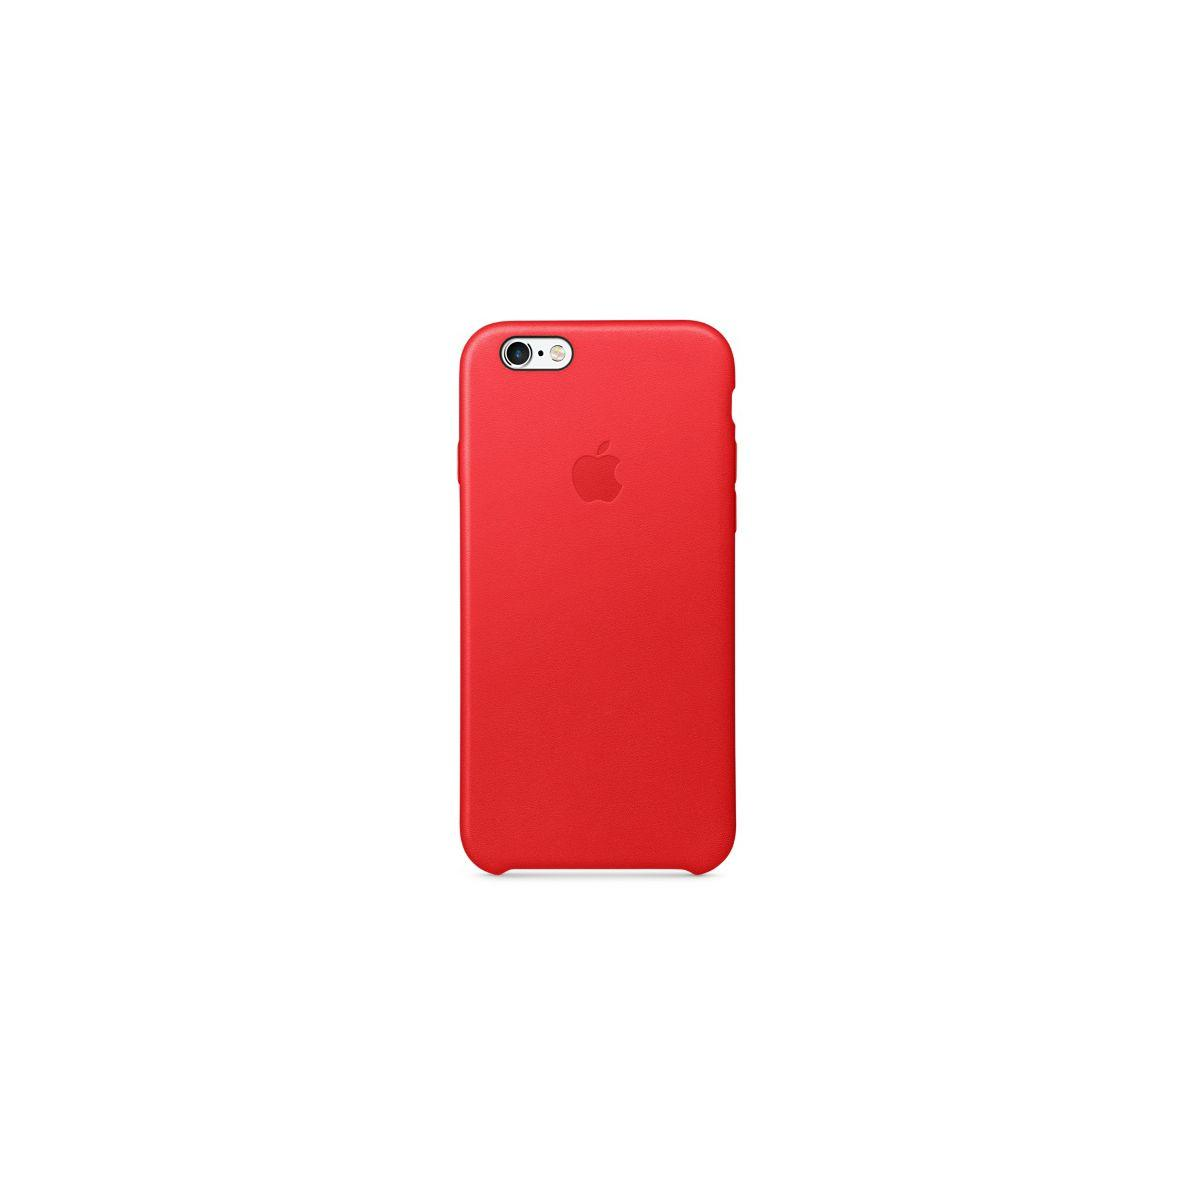 Coque apple iphone 6/6s cuir product(red) (photo)